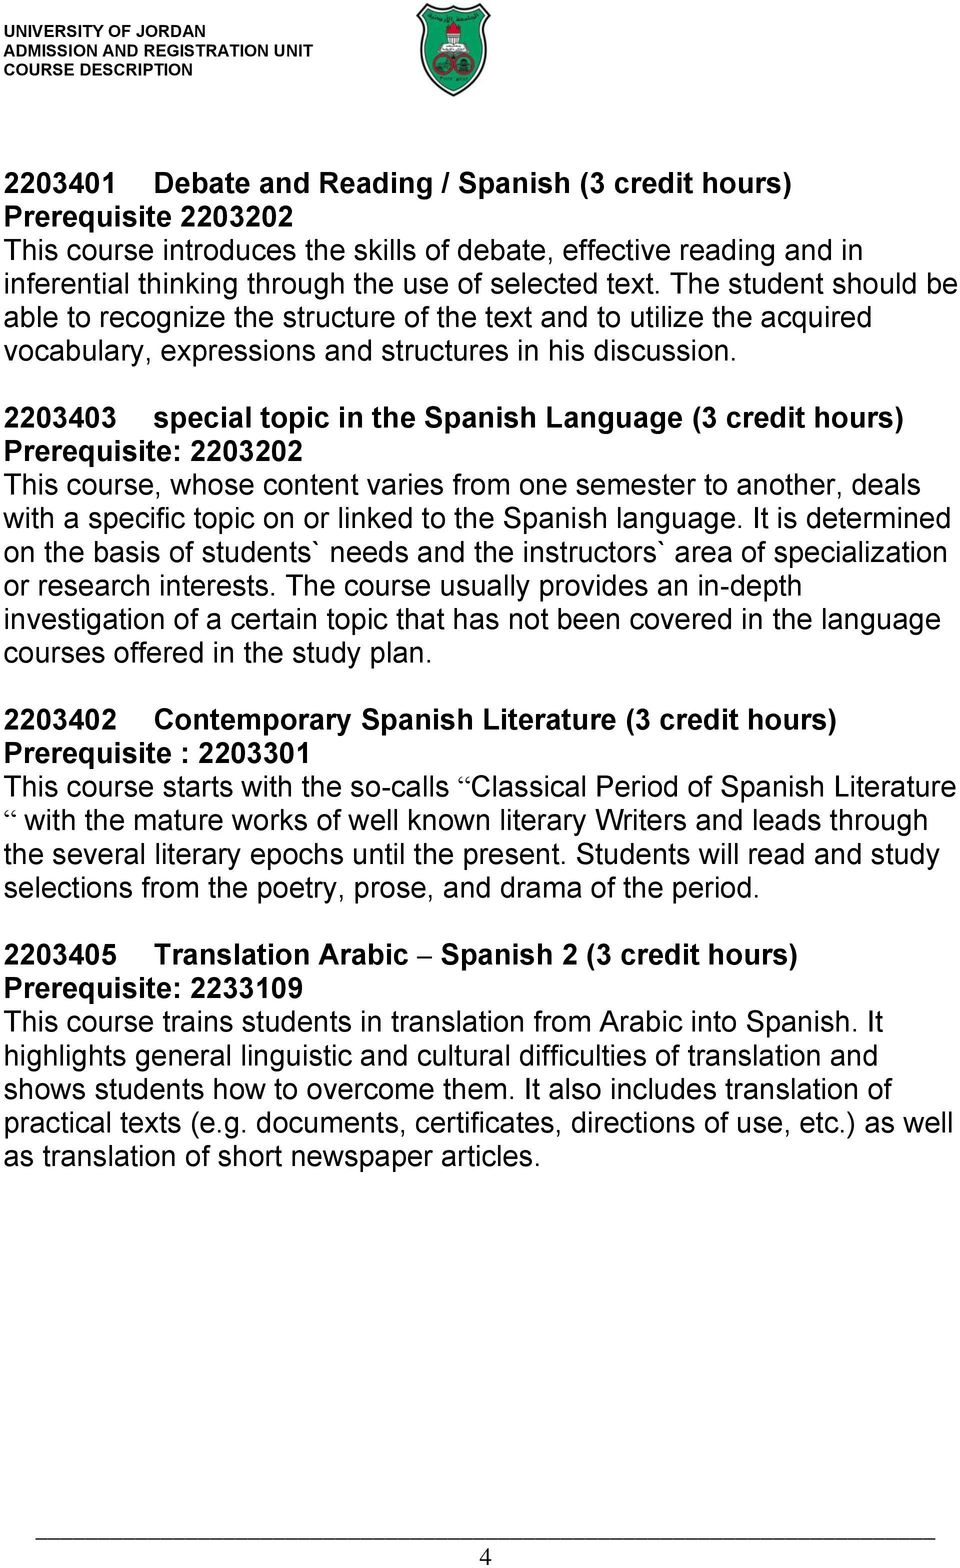 2203403 special topic in the Spanish Language (3 credit hours) Prerequisite: 2203202 This course, whose content varies from one semester to another, deals with a specific topic on or linked to the